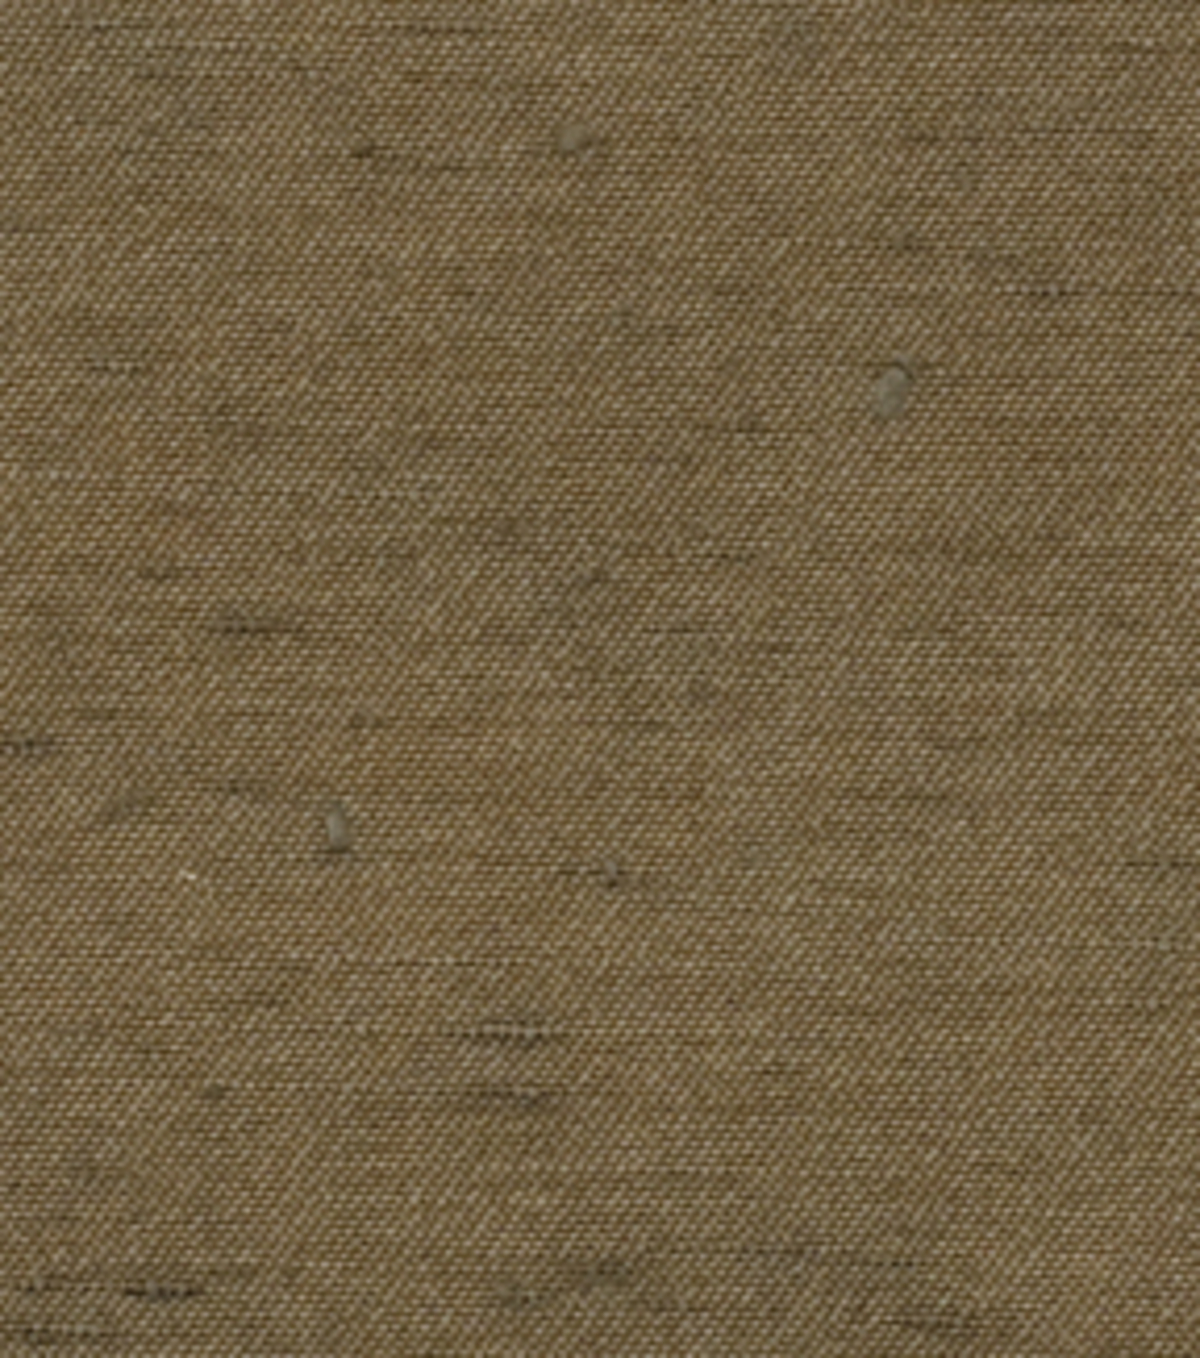 Home Decor 8\u0022x8\u0022 Fabric Swatch-Signature Series Antique Satin Woodland